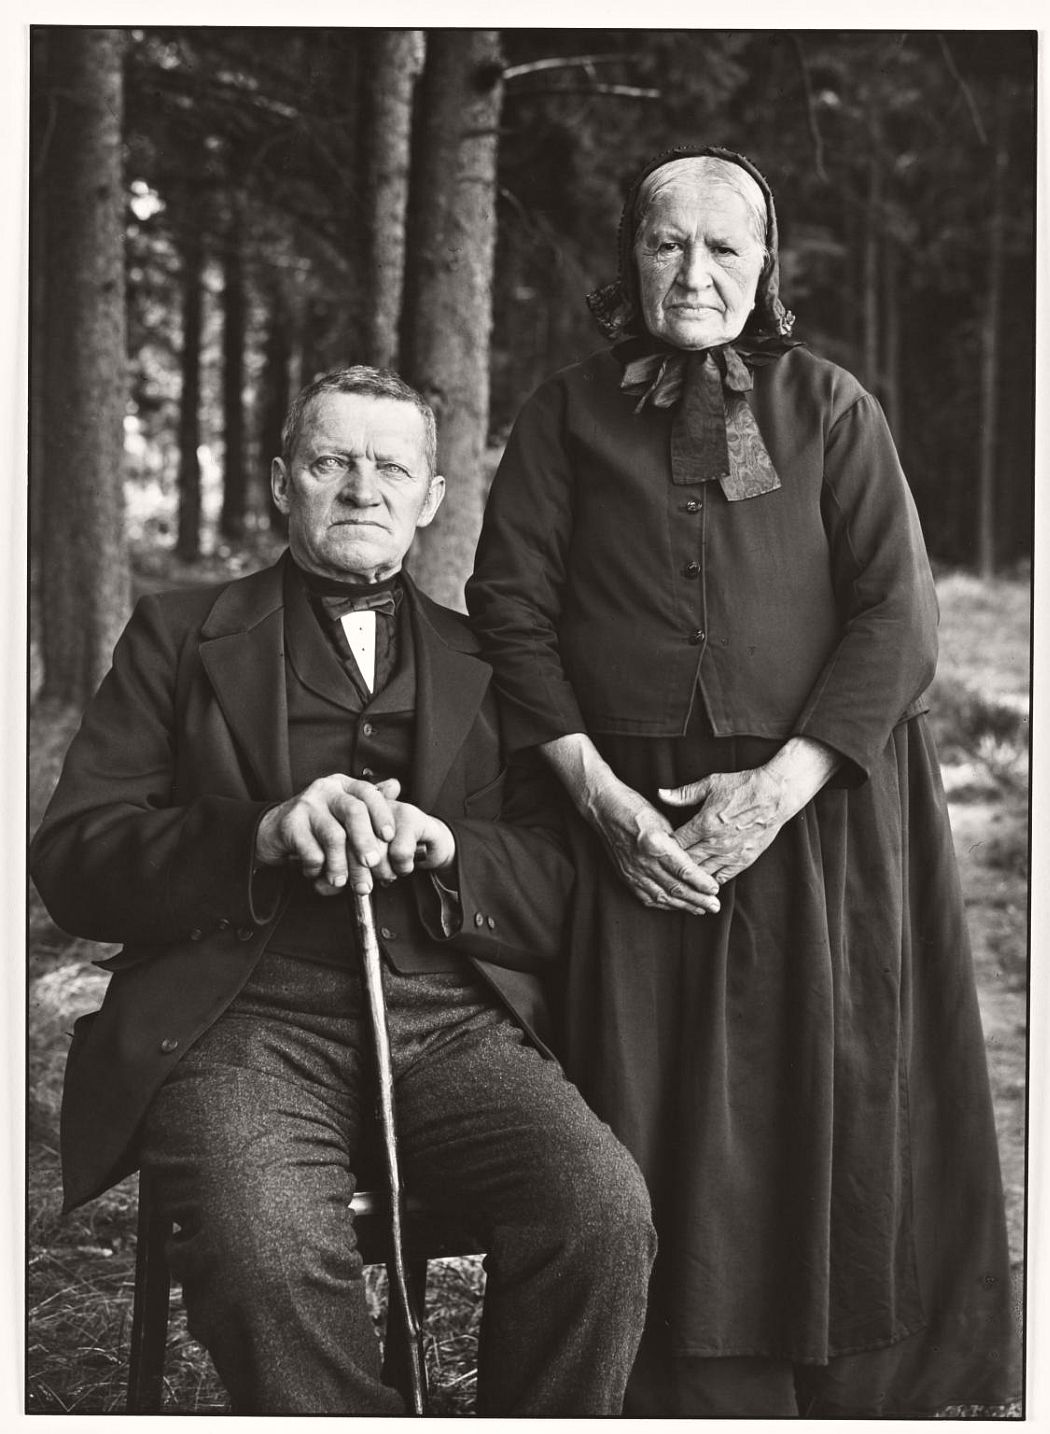 Farming Couple - Propriety and Harmony 1912, printed 1990 August Sander 1876-1964 ARTIST ROOMS  Tate and National Galleries of Scotland. Lent by Anthony d'Offay 2010 http://www.tate.org.uk/art/work/AL00011